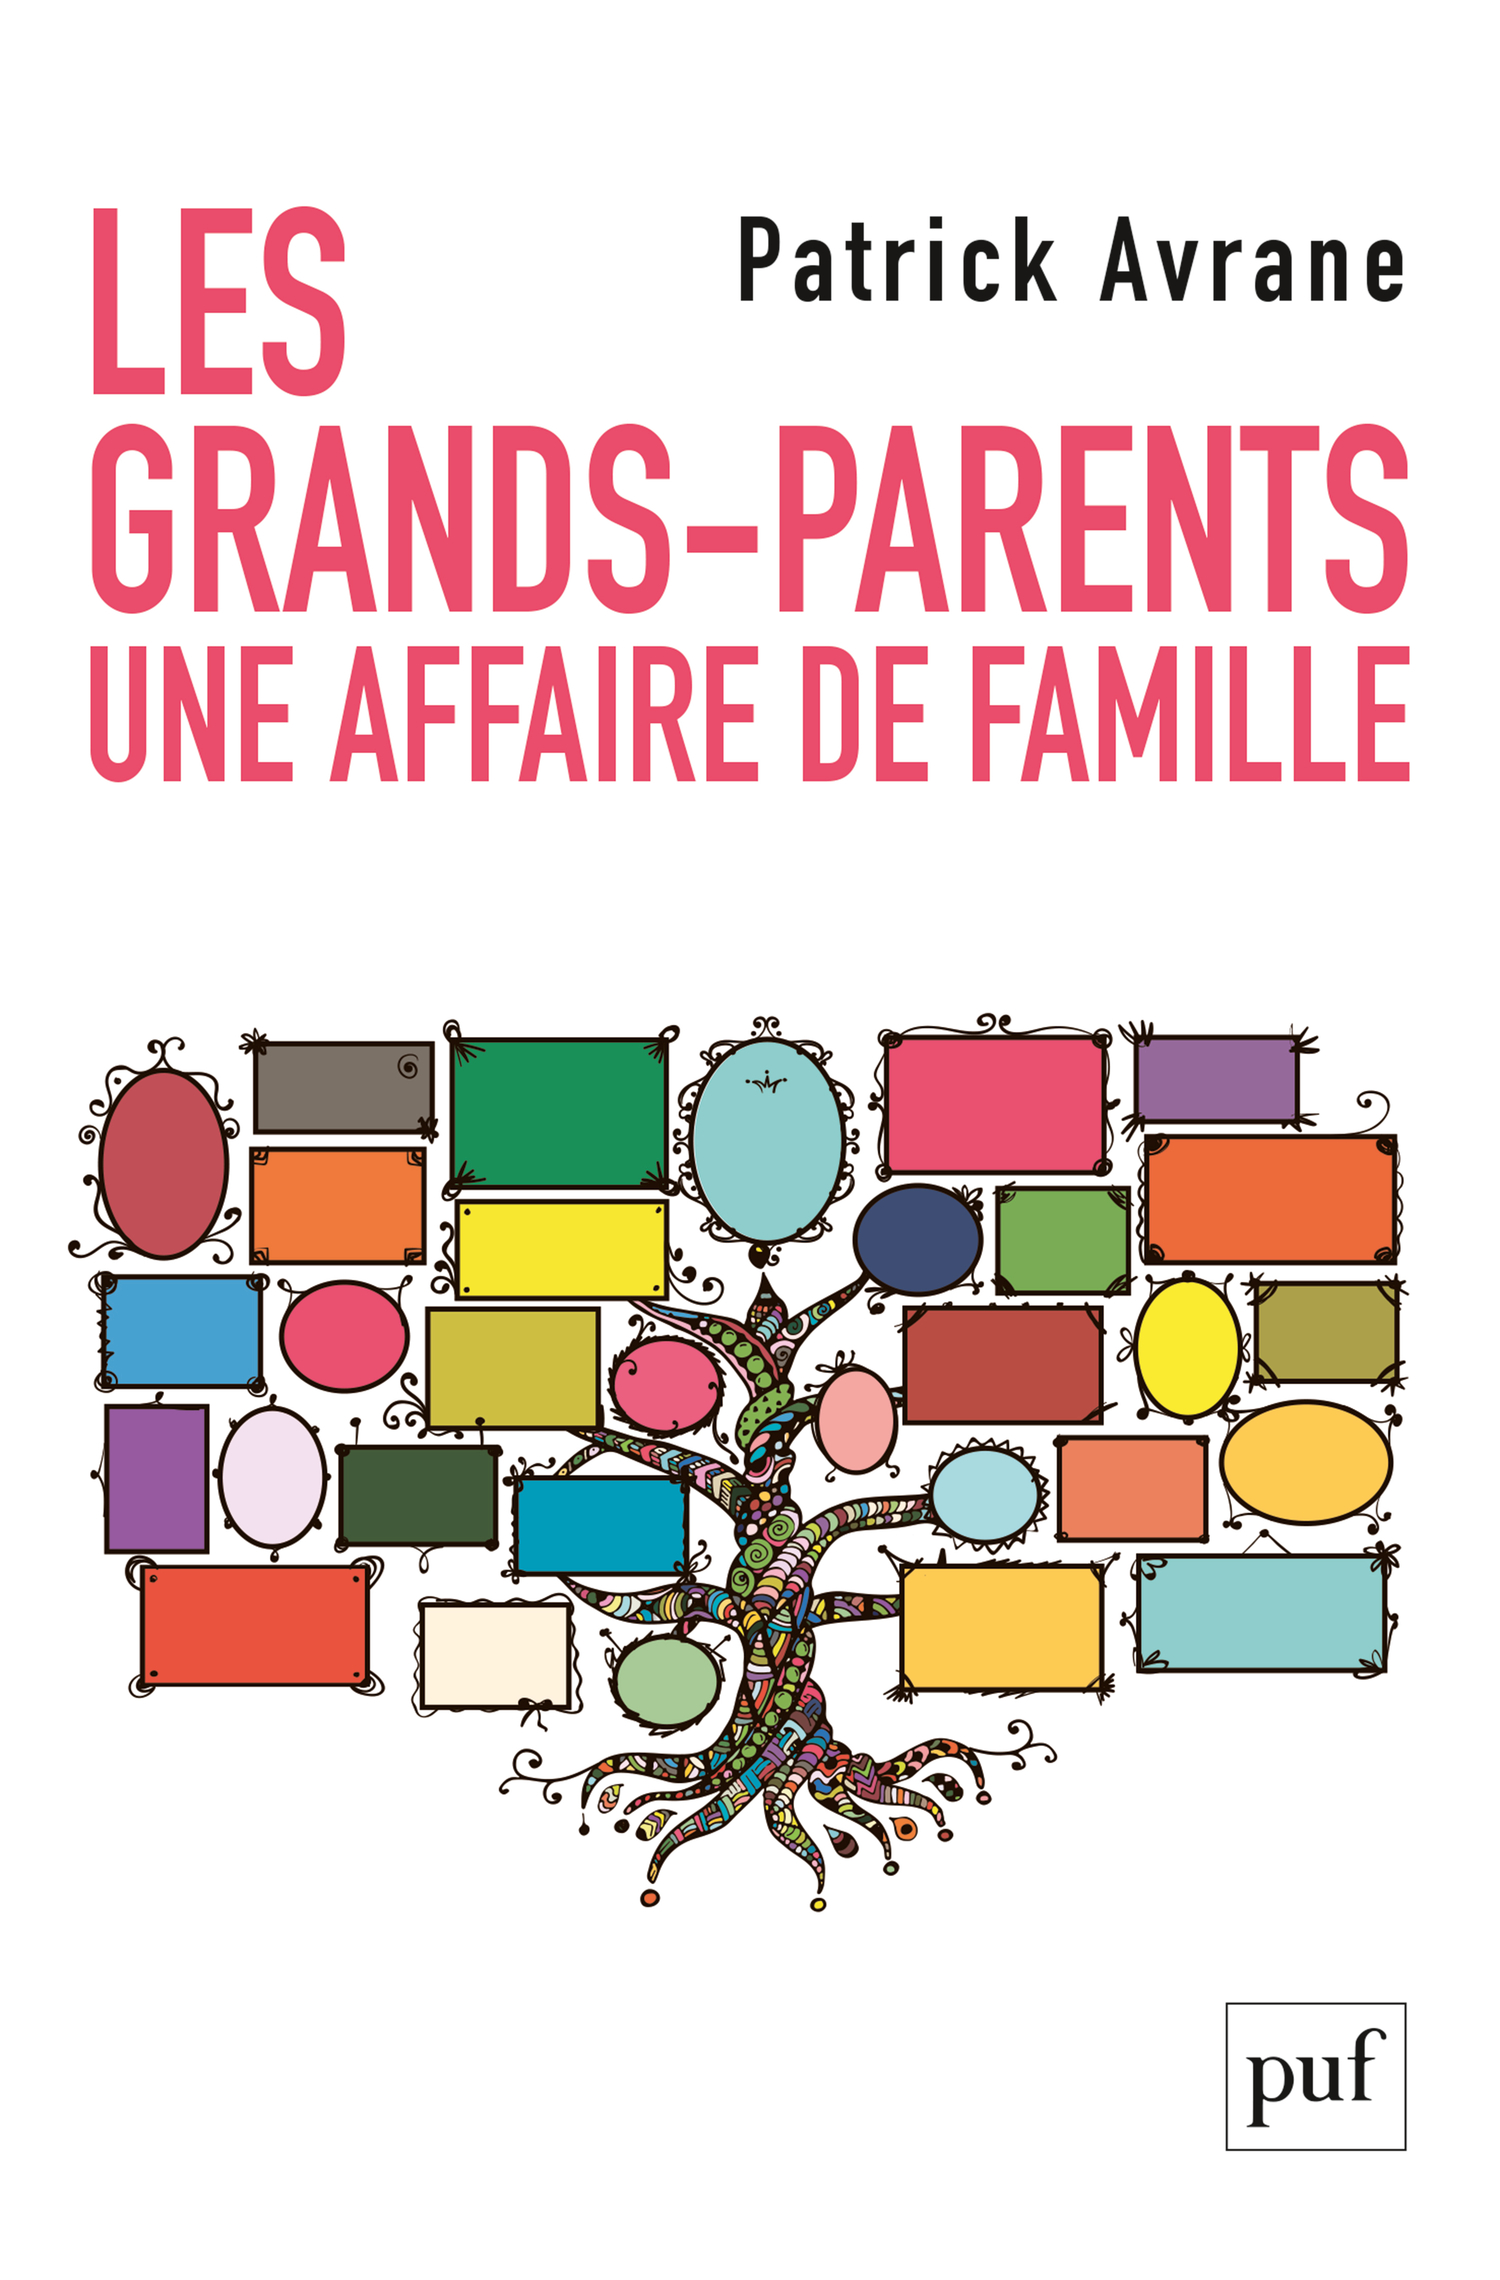 Les grands-parents. Une affaire de famille De Patrick Avrane - Presses Universitaires de France